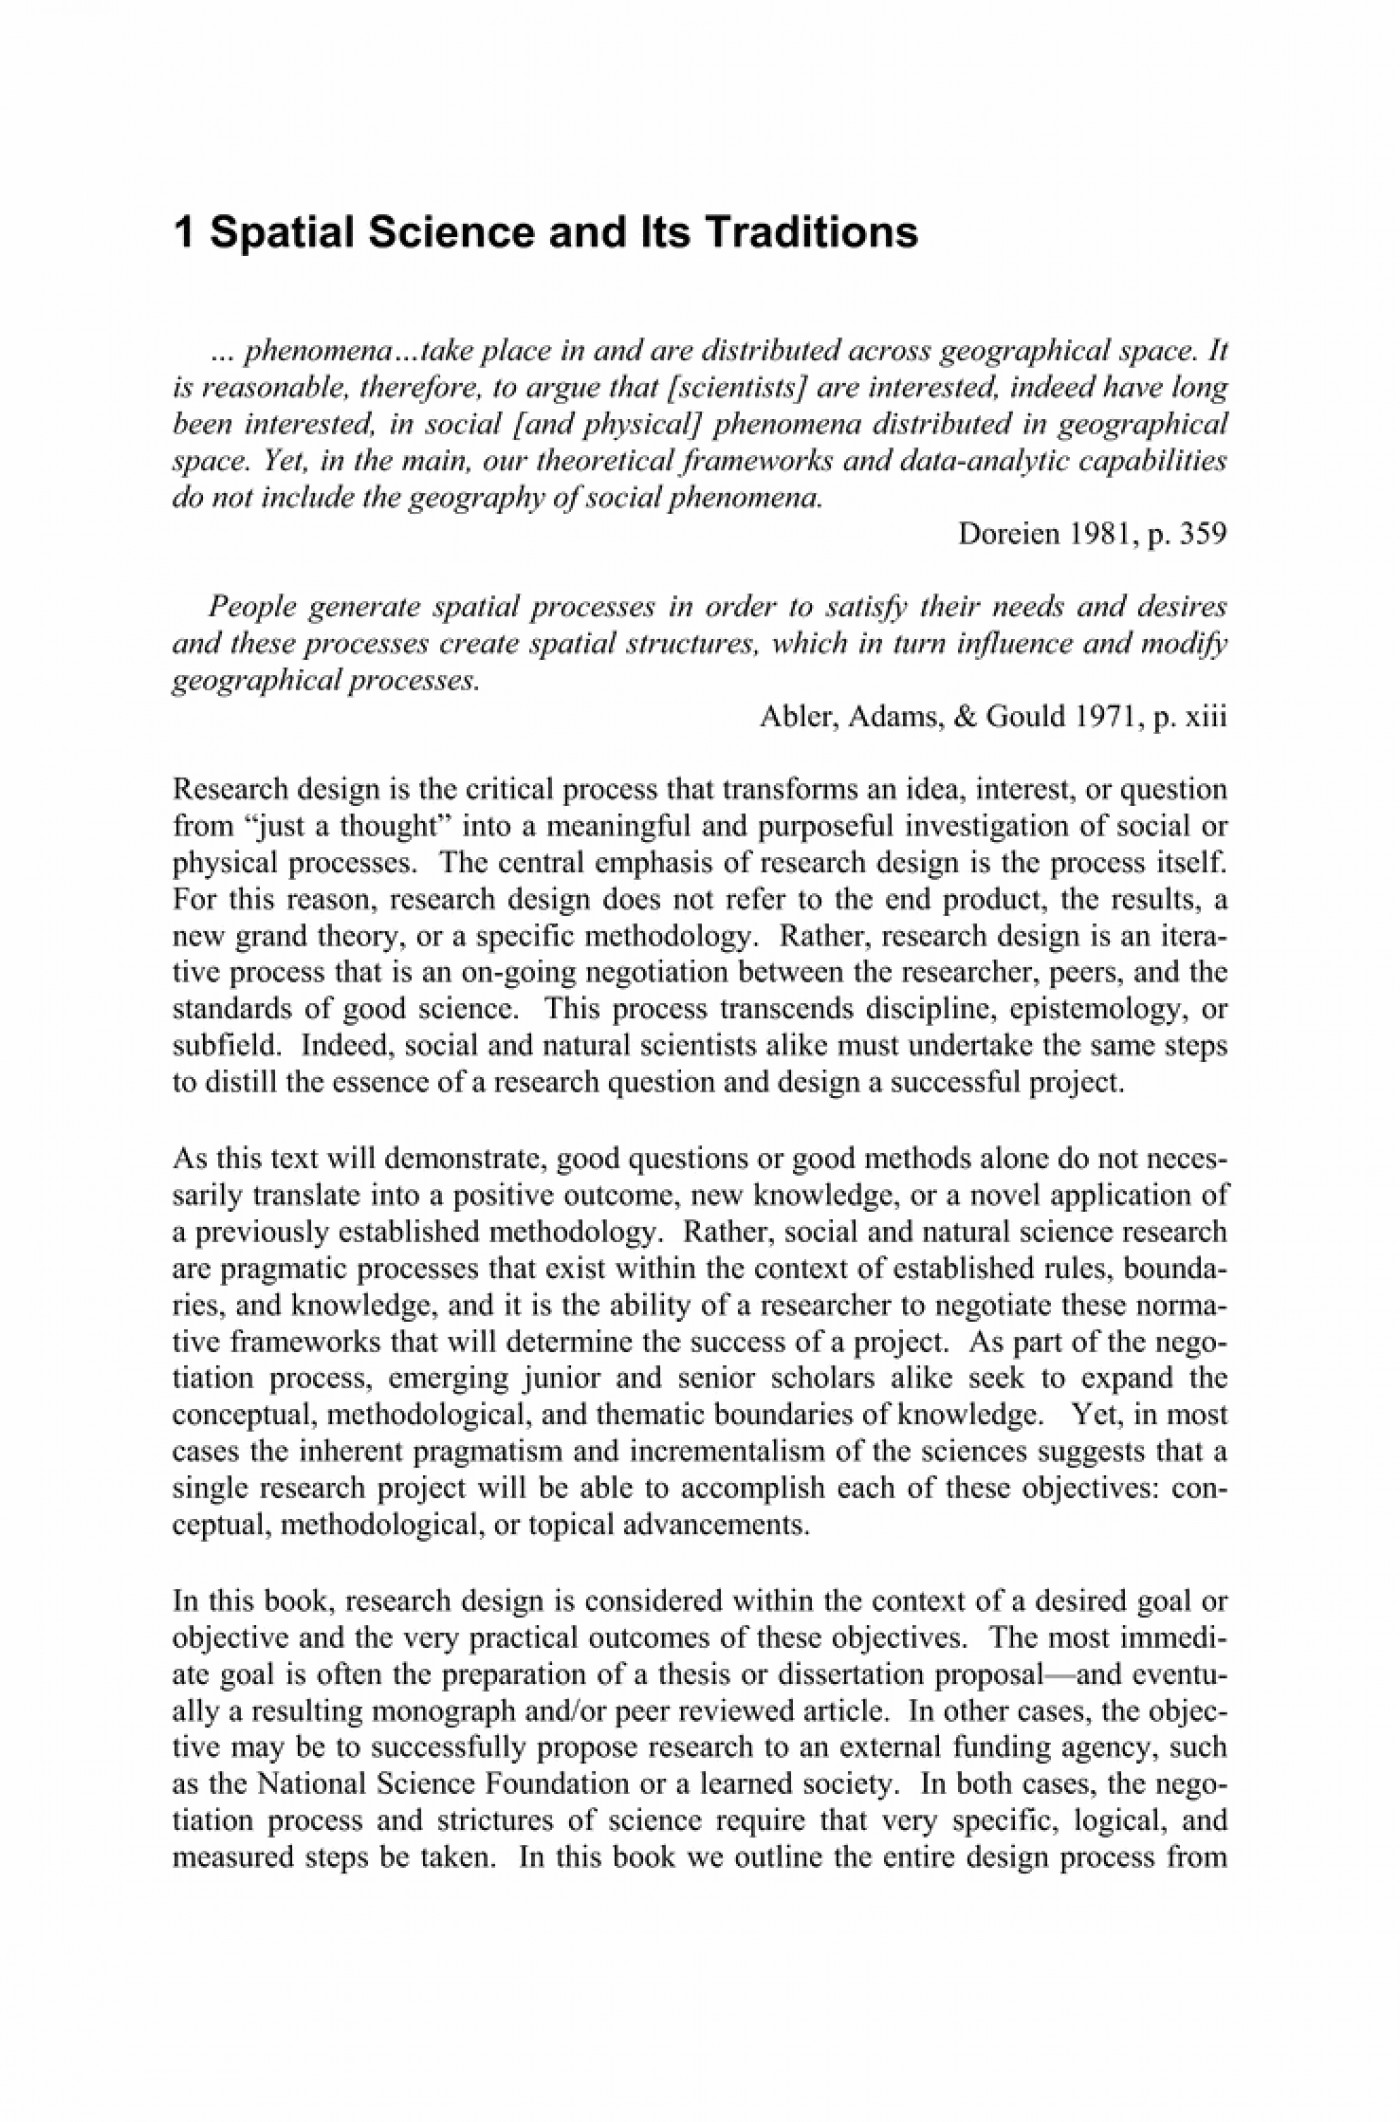 004 Research Paper How To Write Scientific Sensational Pdf And Publish A Computer Science 1400